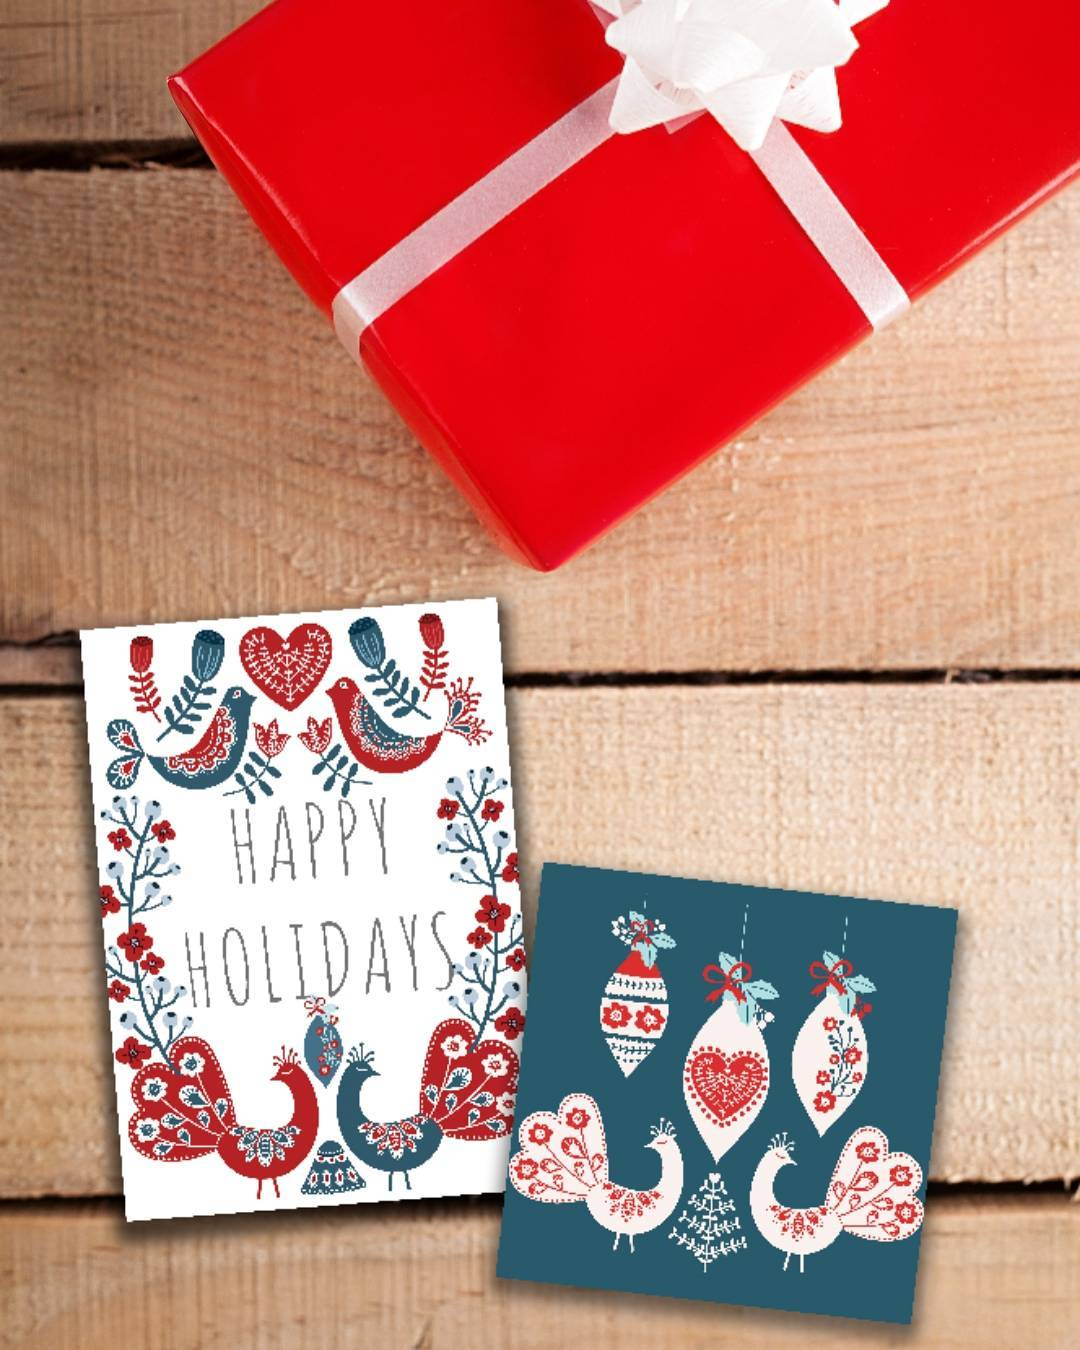 35 lovely diy new year card ideas for the ones who love crafting pretty holidays card idea m4hsunfo